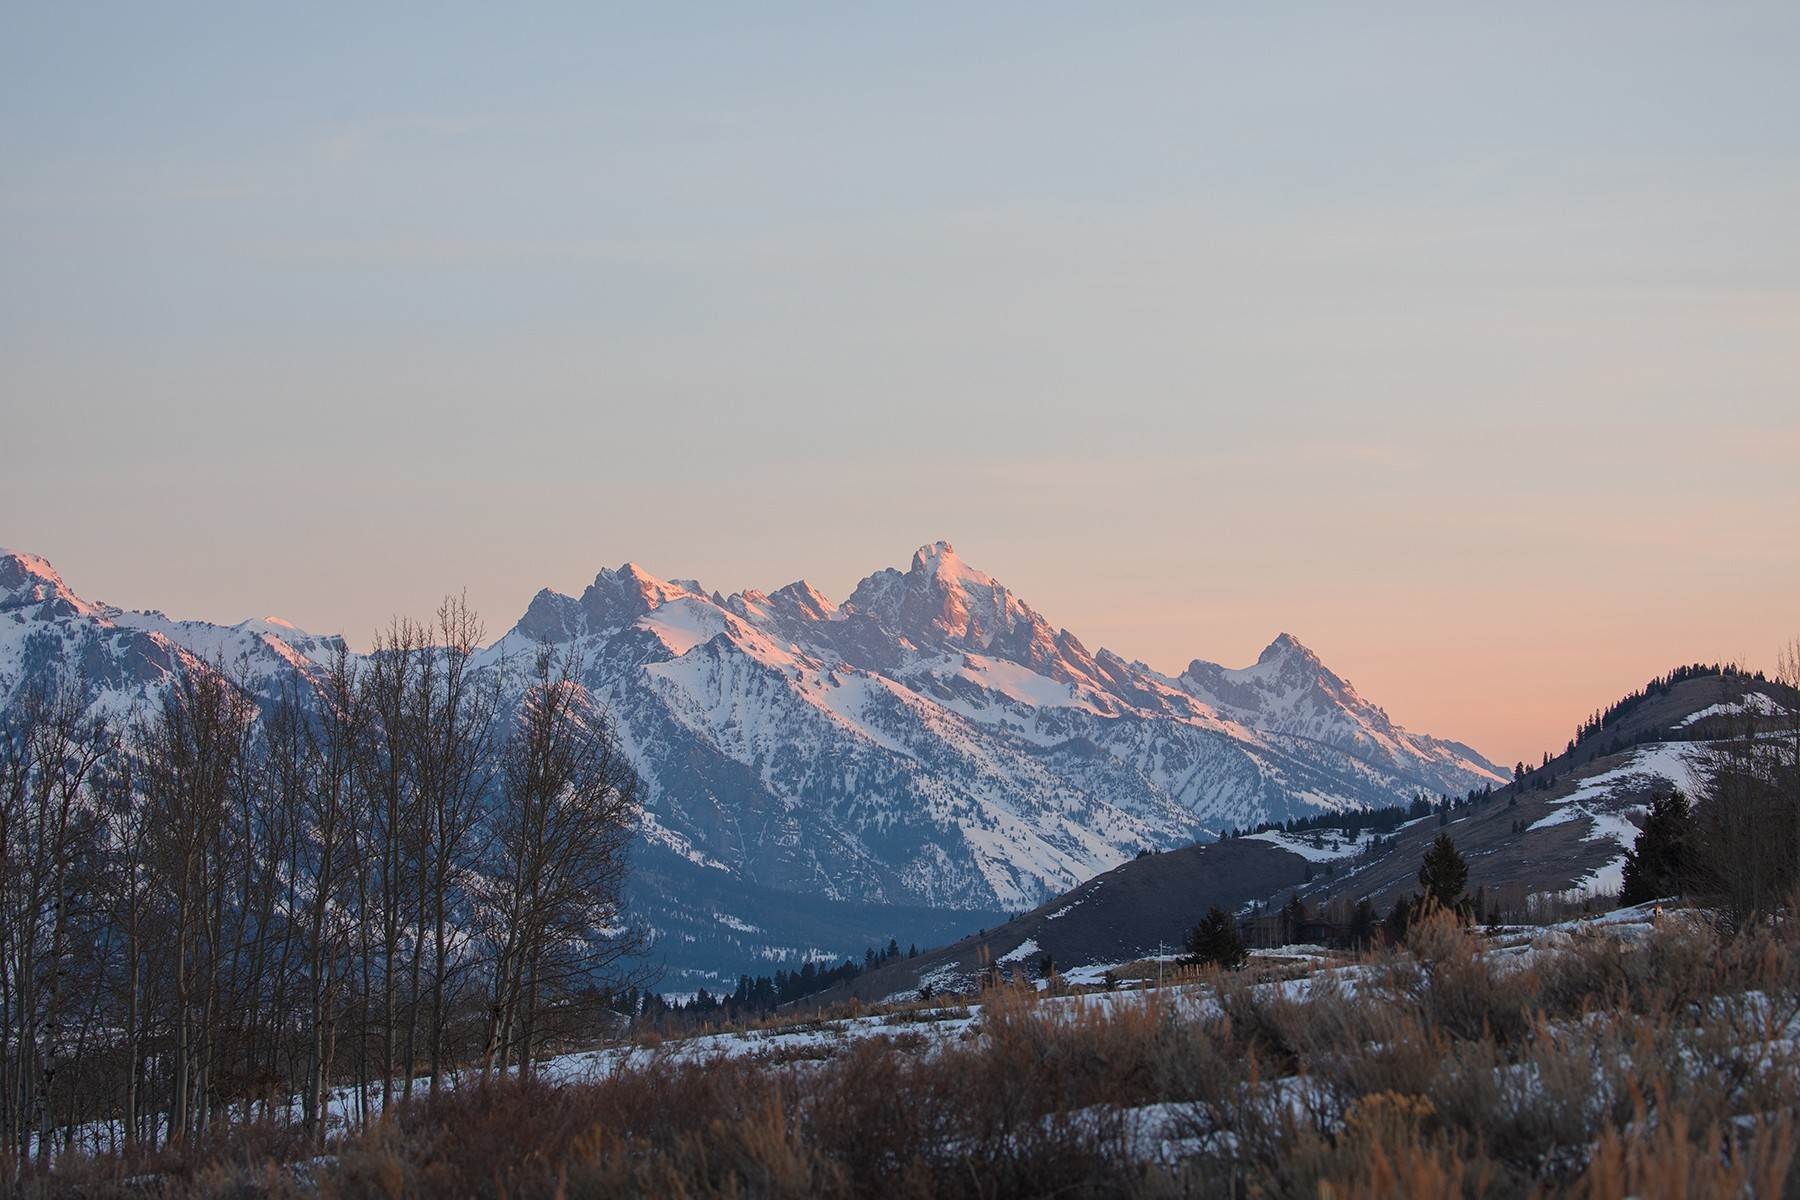 Land for Sale at 1620 N Pratt Jackson, Wyoming 83001 United States